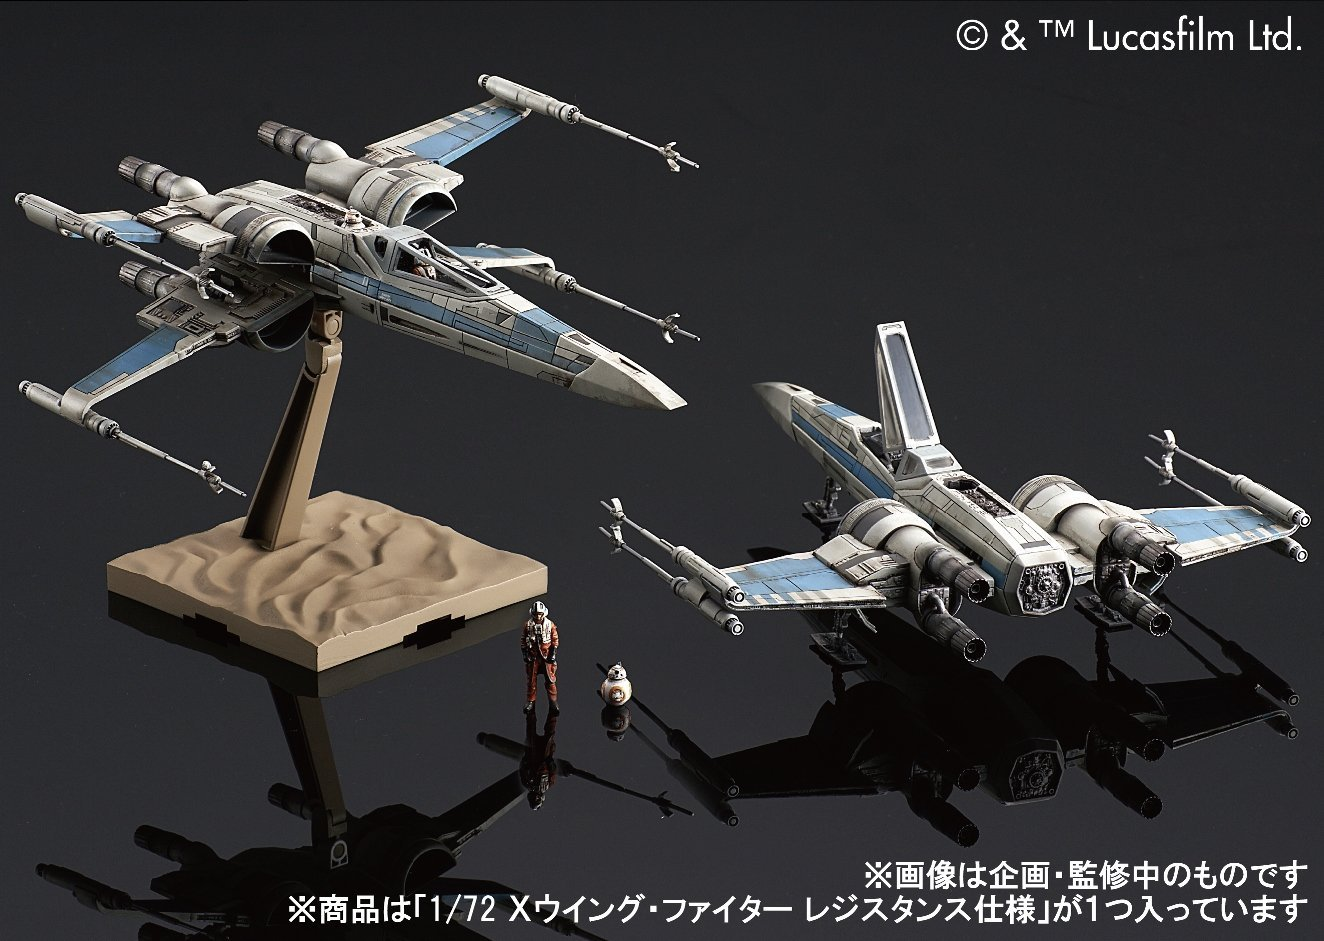 Bandai Star Wars Resistance X Wing Starfighter 1/72 Plastic Mode